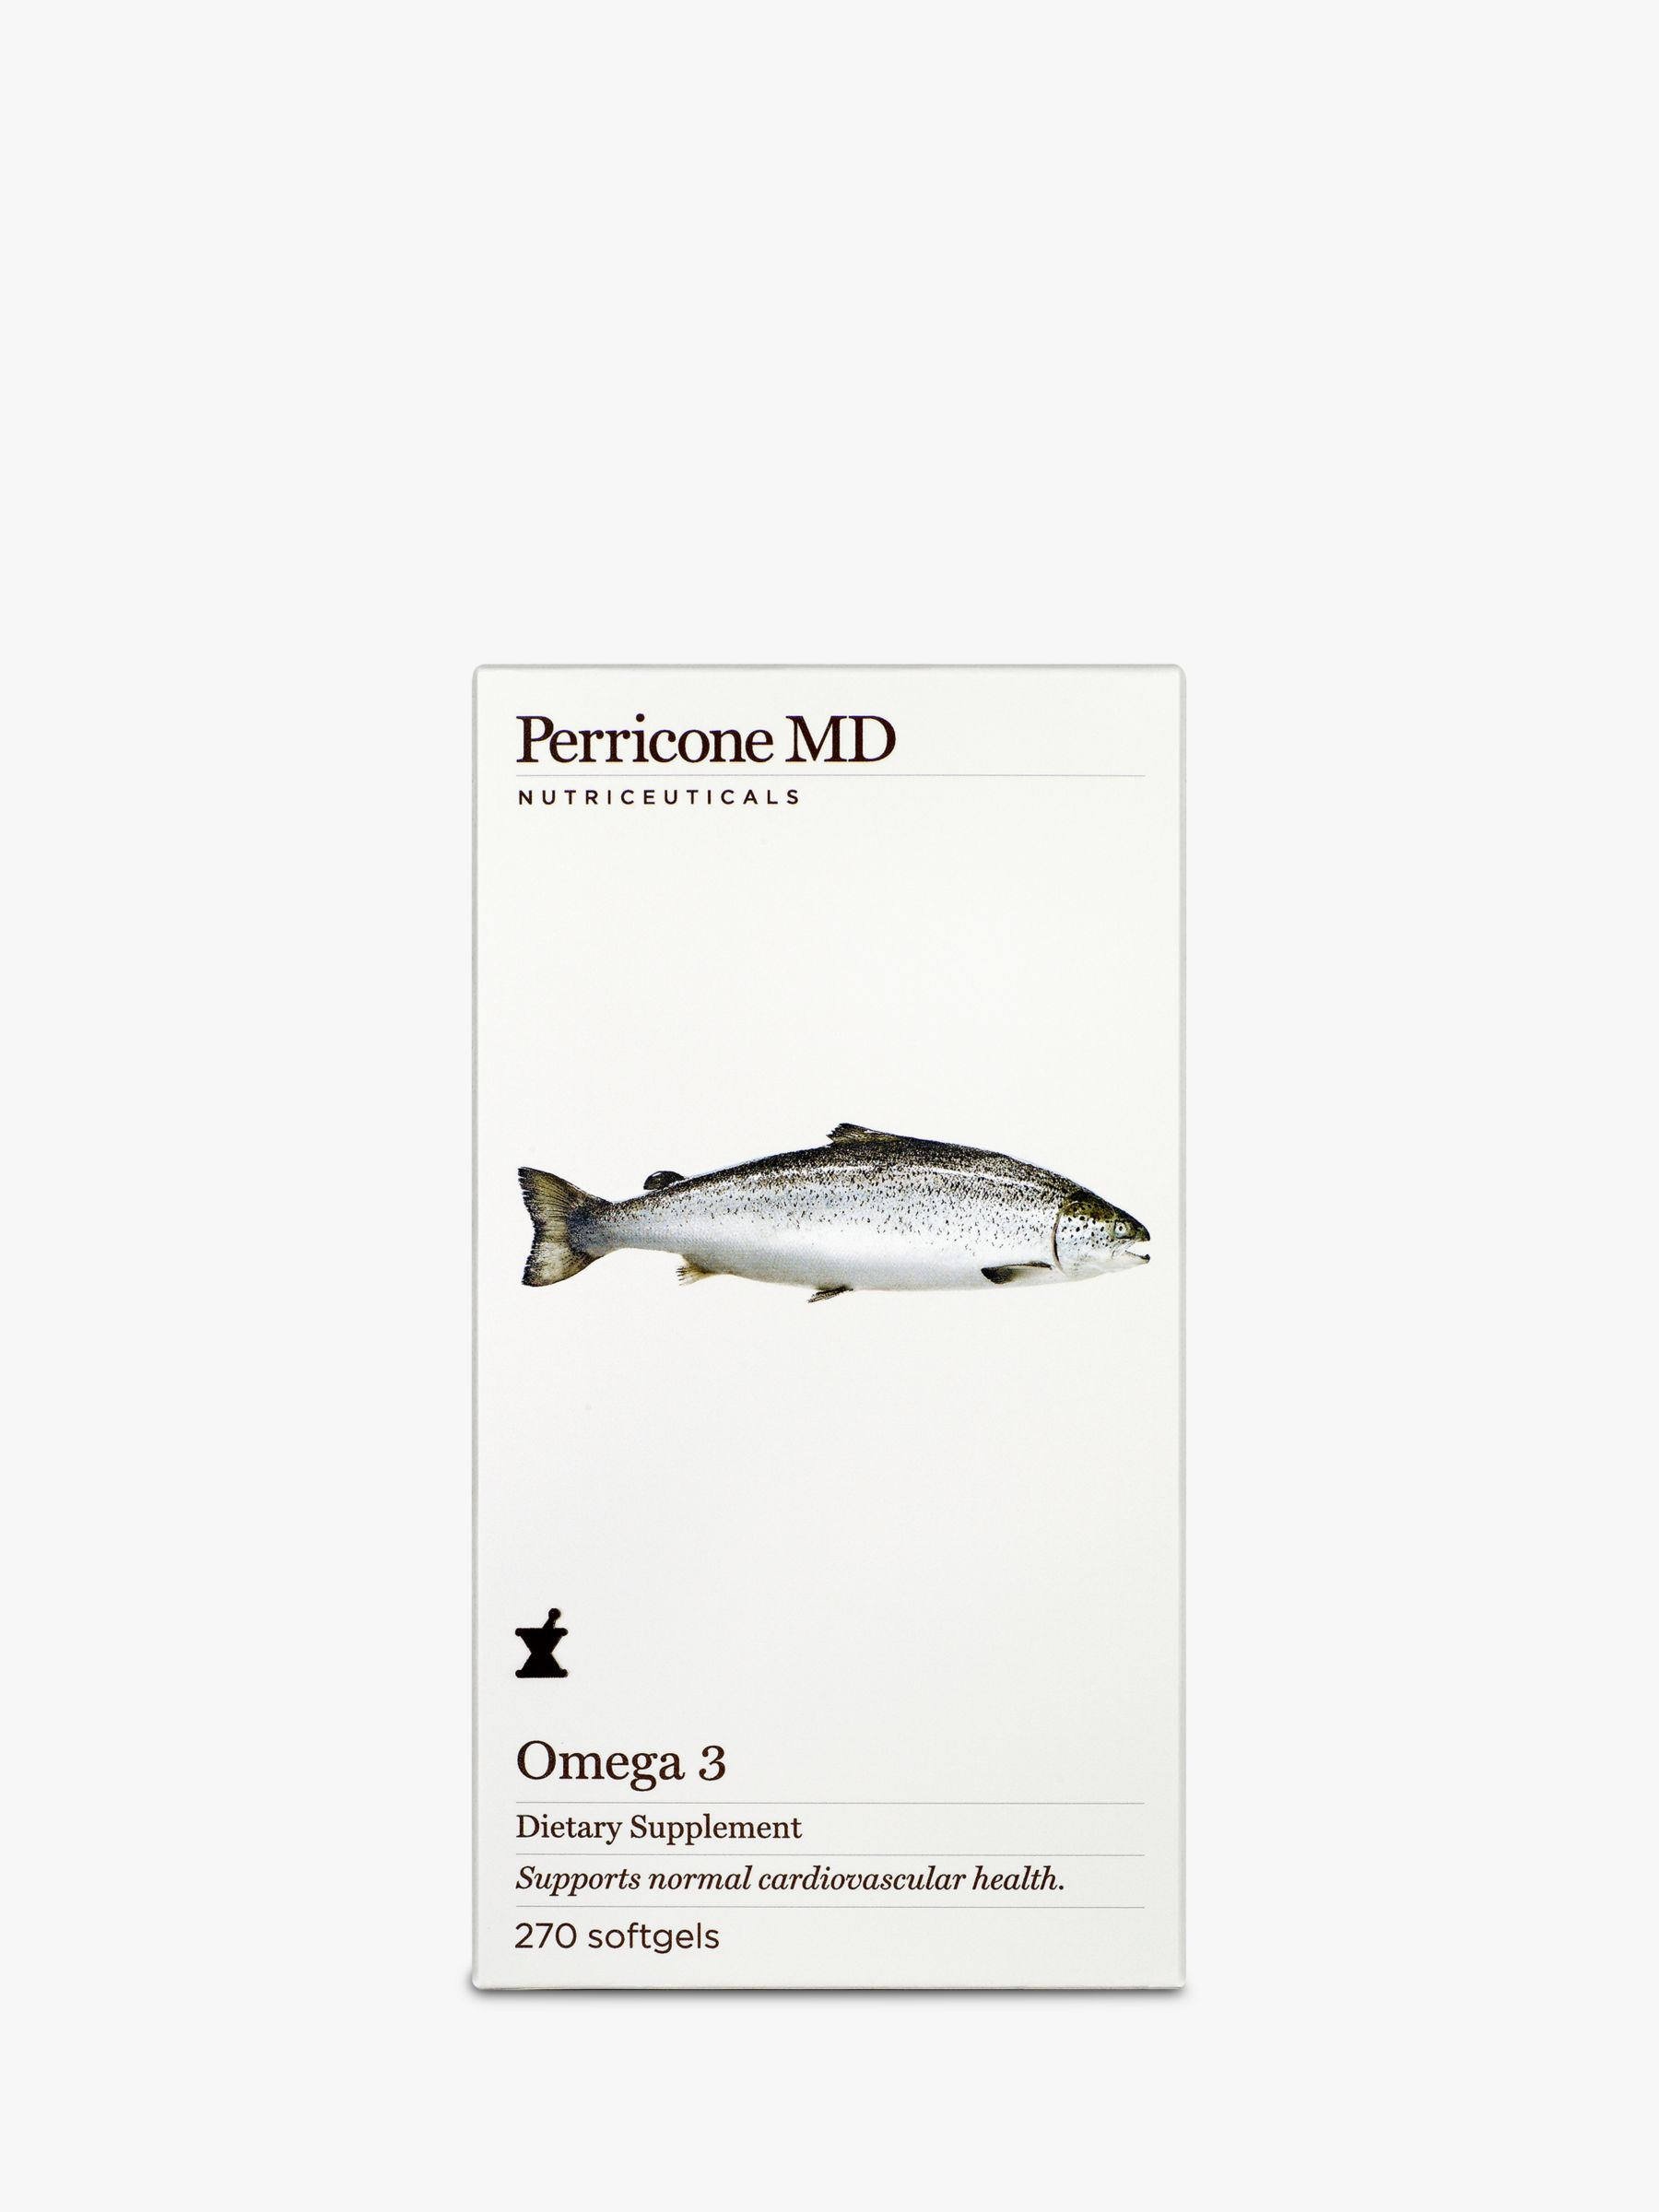 Perricone MD Perricone MD Omega 3 Dietry Supplement